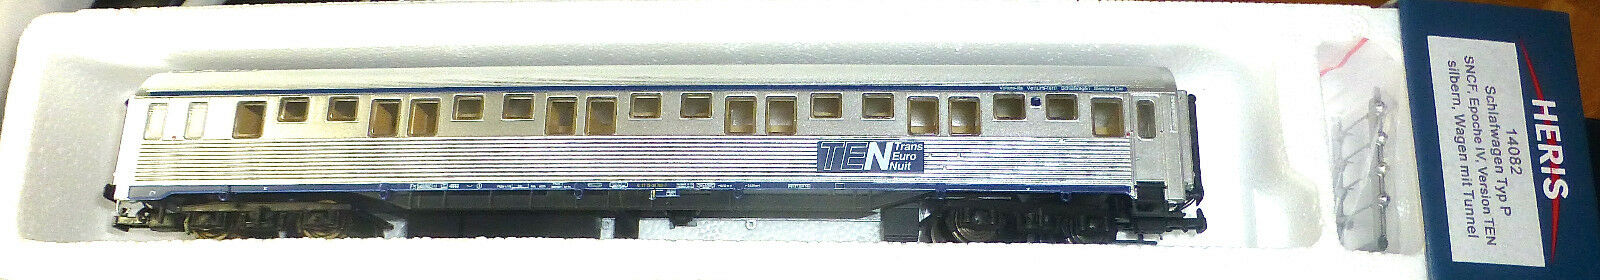 SNCF VAGONE LETTO DIECI tipo P ARGENTO ep.iv HERIS 14082 H0 1:87 conf. orig.